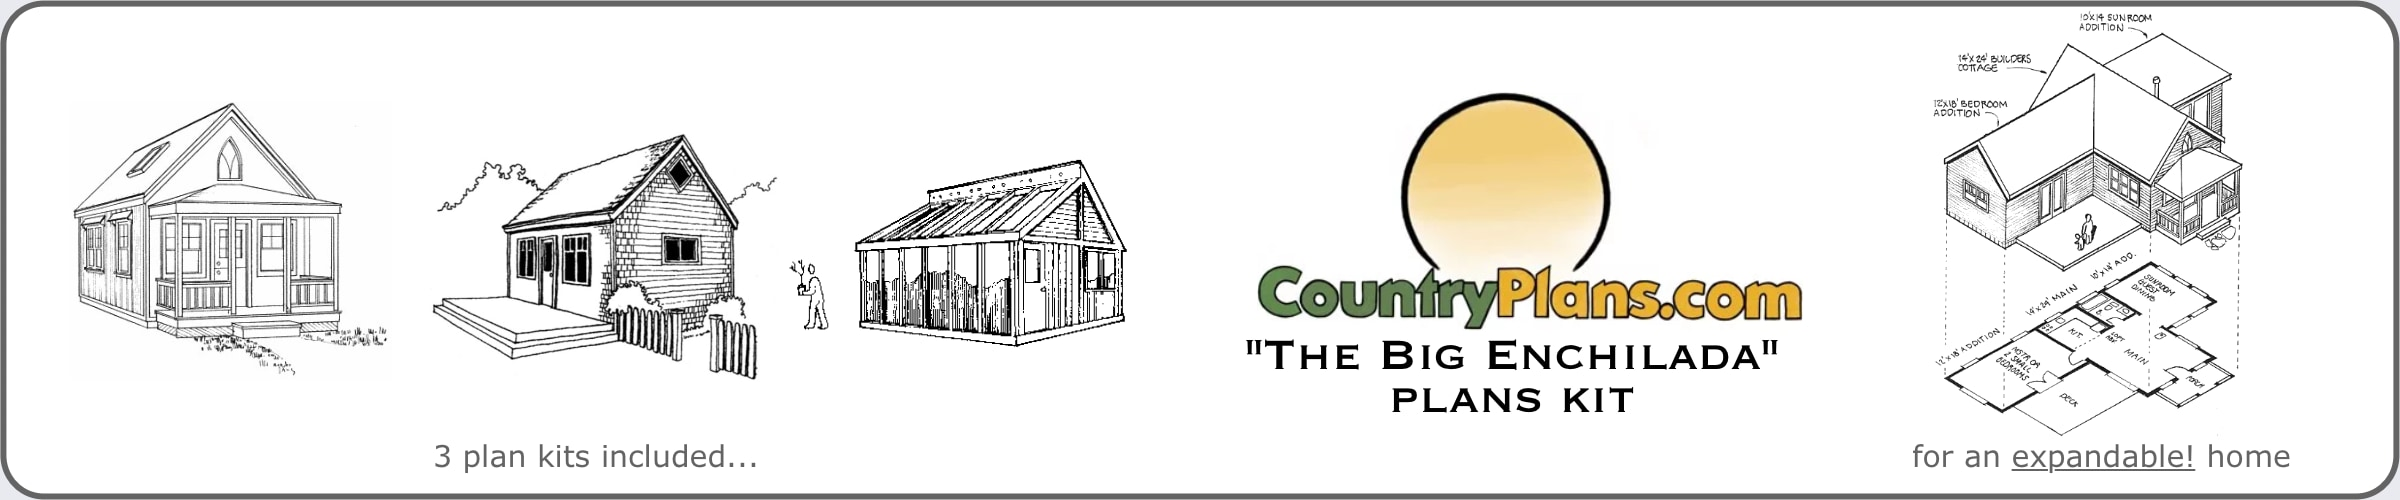 please visit CountryPlans.com for more info